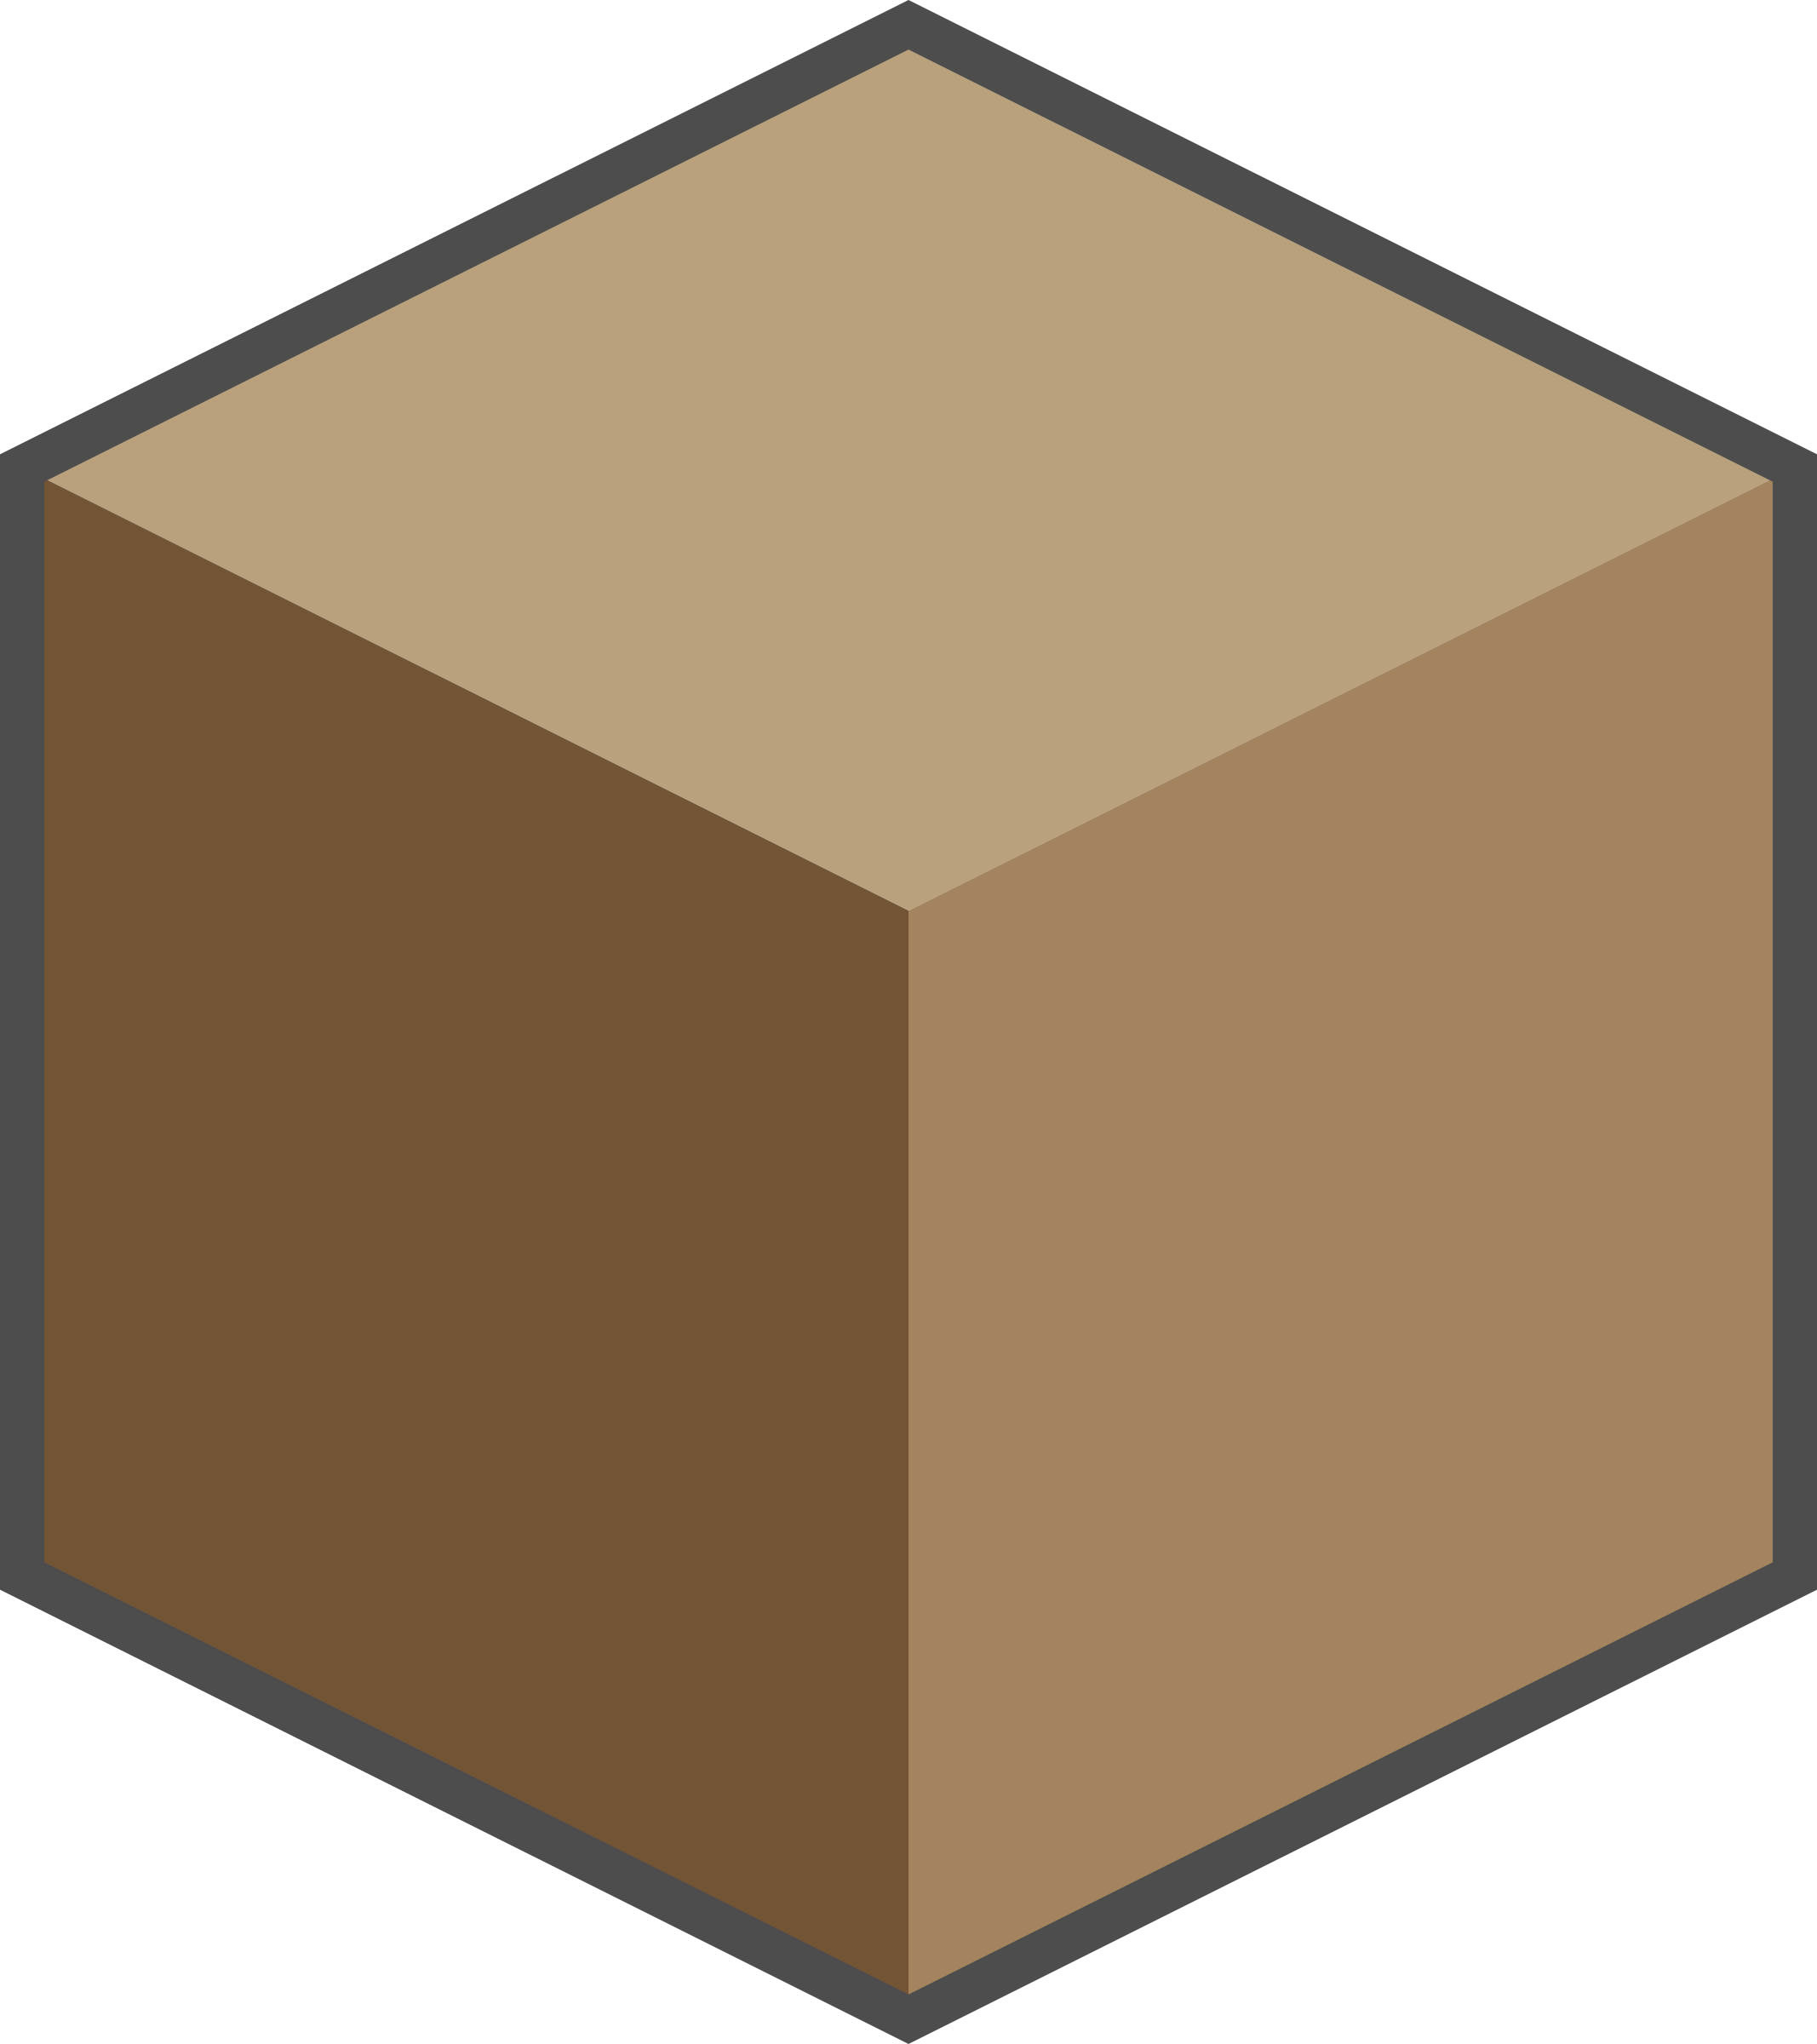 Cube clipart sugar cube Cube Clipart Brown cube sugar